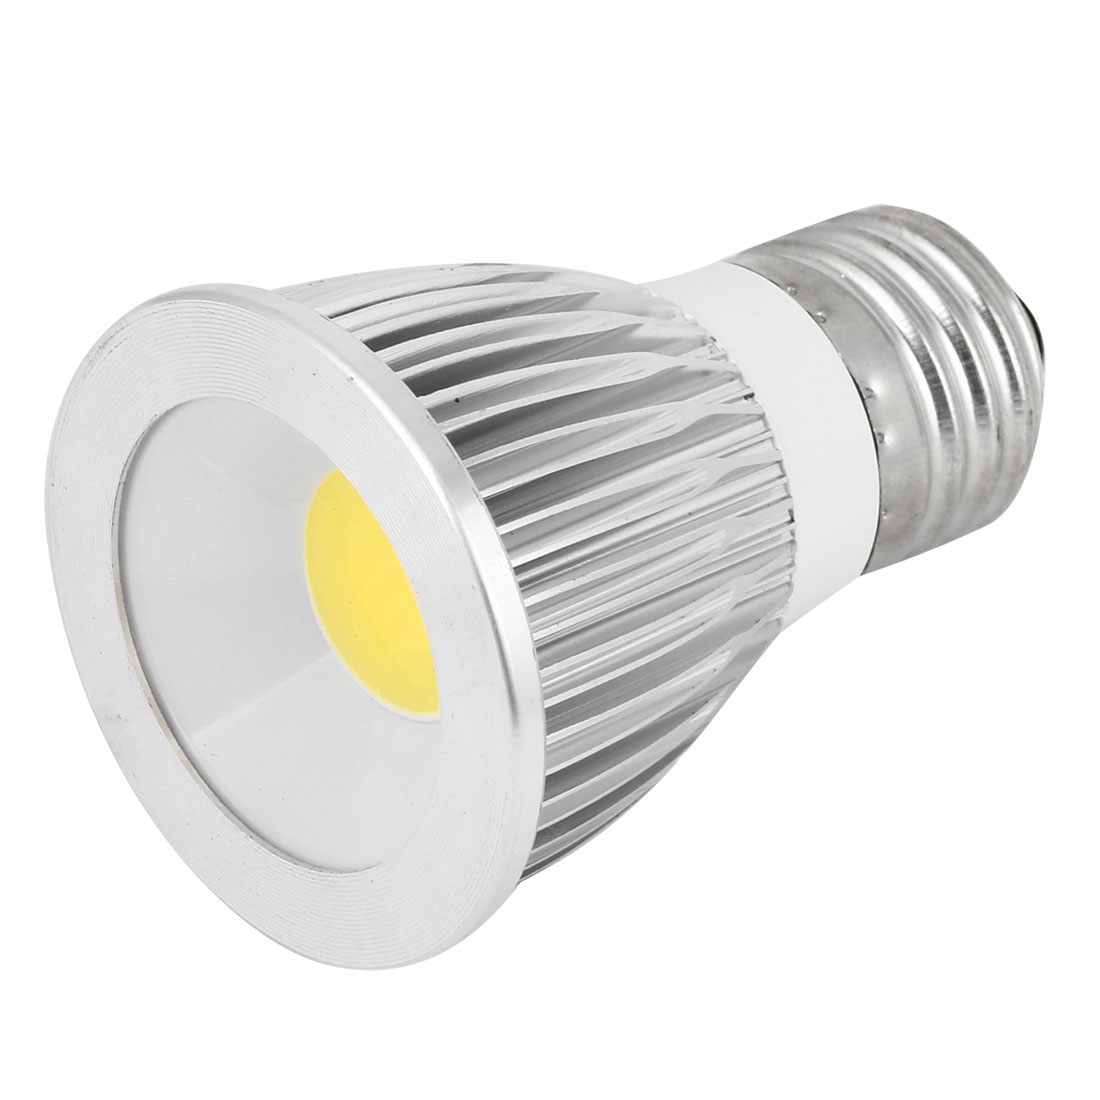 AC 85-265V 9W E27 Non-dimmable White Light COB LED Downlight Spotlight Lamp Bulb